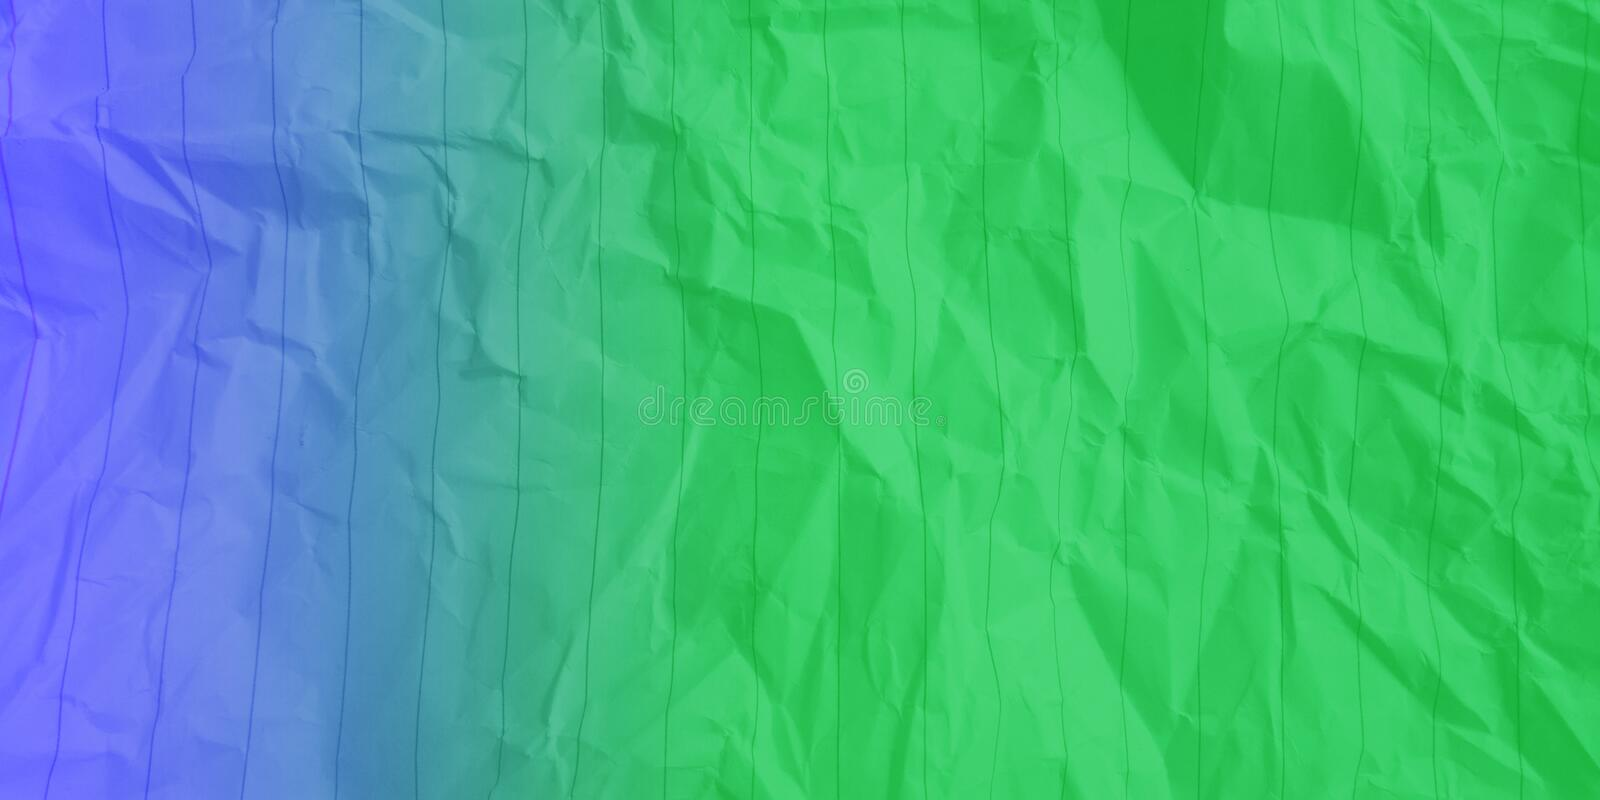 Abstract crumpled paper electric blue light green color multi colors effects background. stock photo